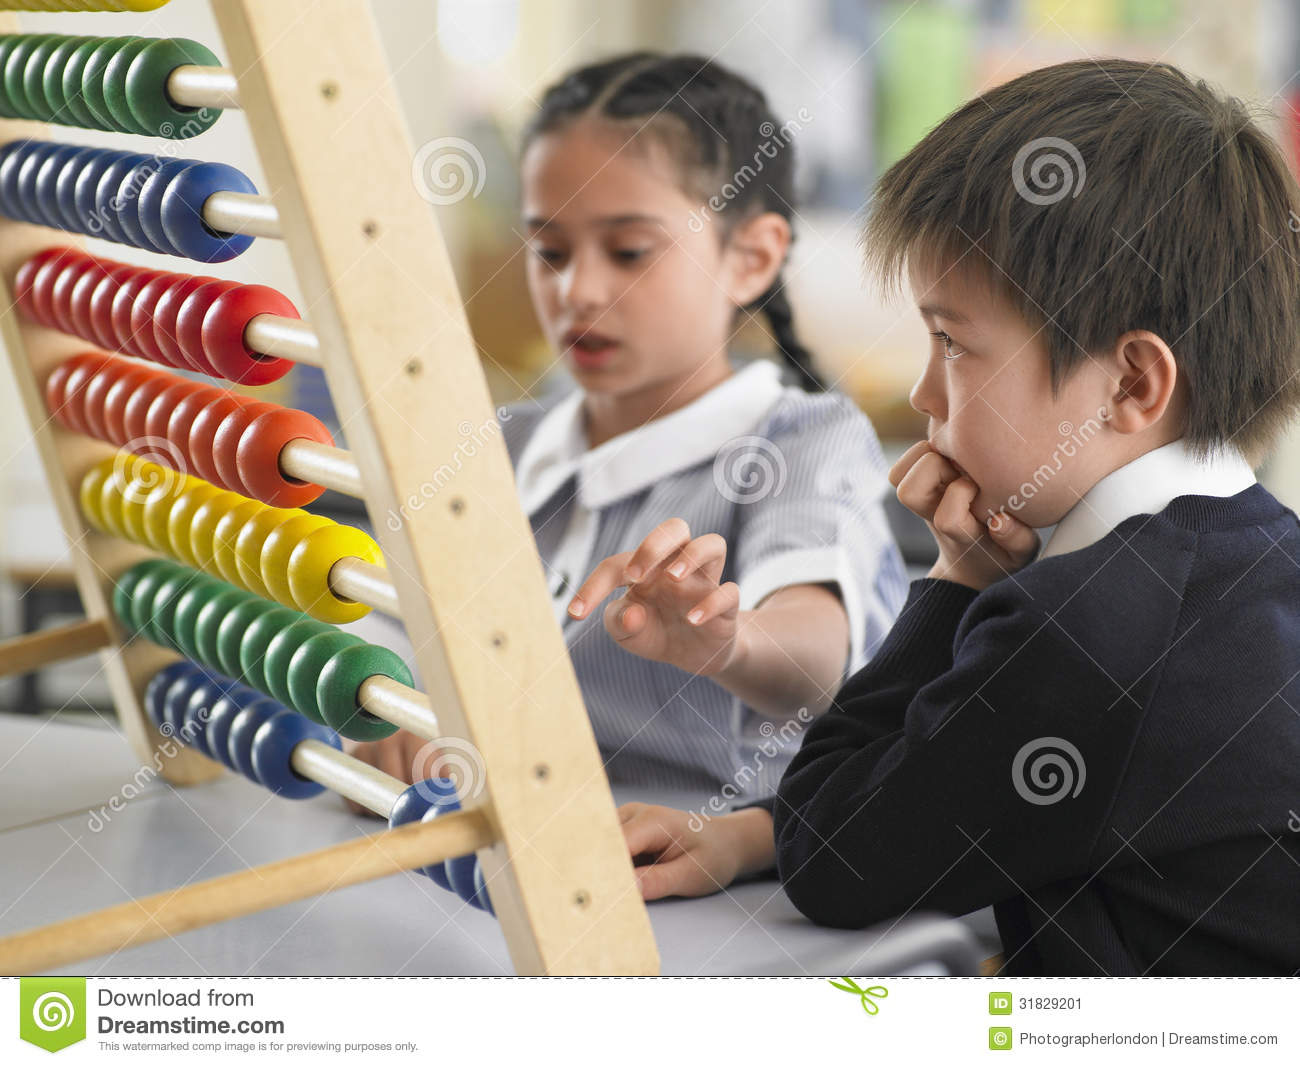 Elementary Classrooms Technology Use : Students using abacus in classroom stock image